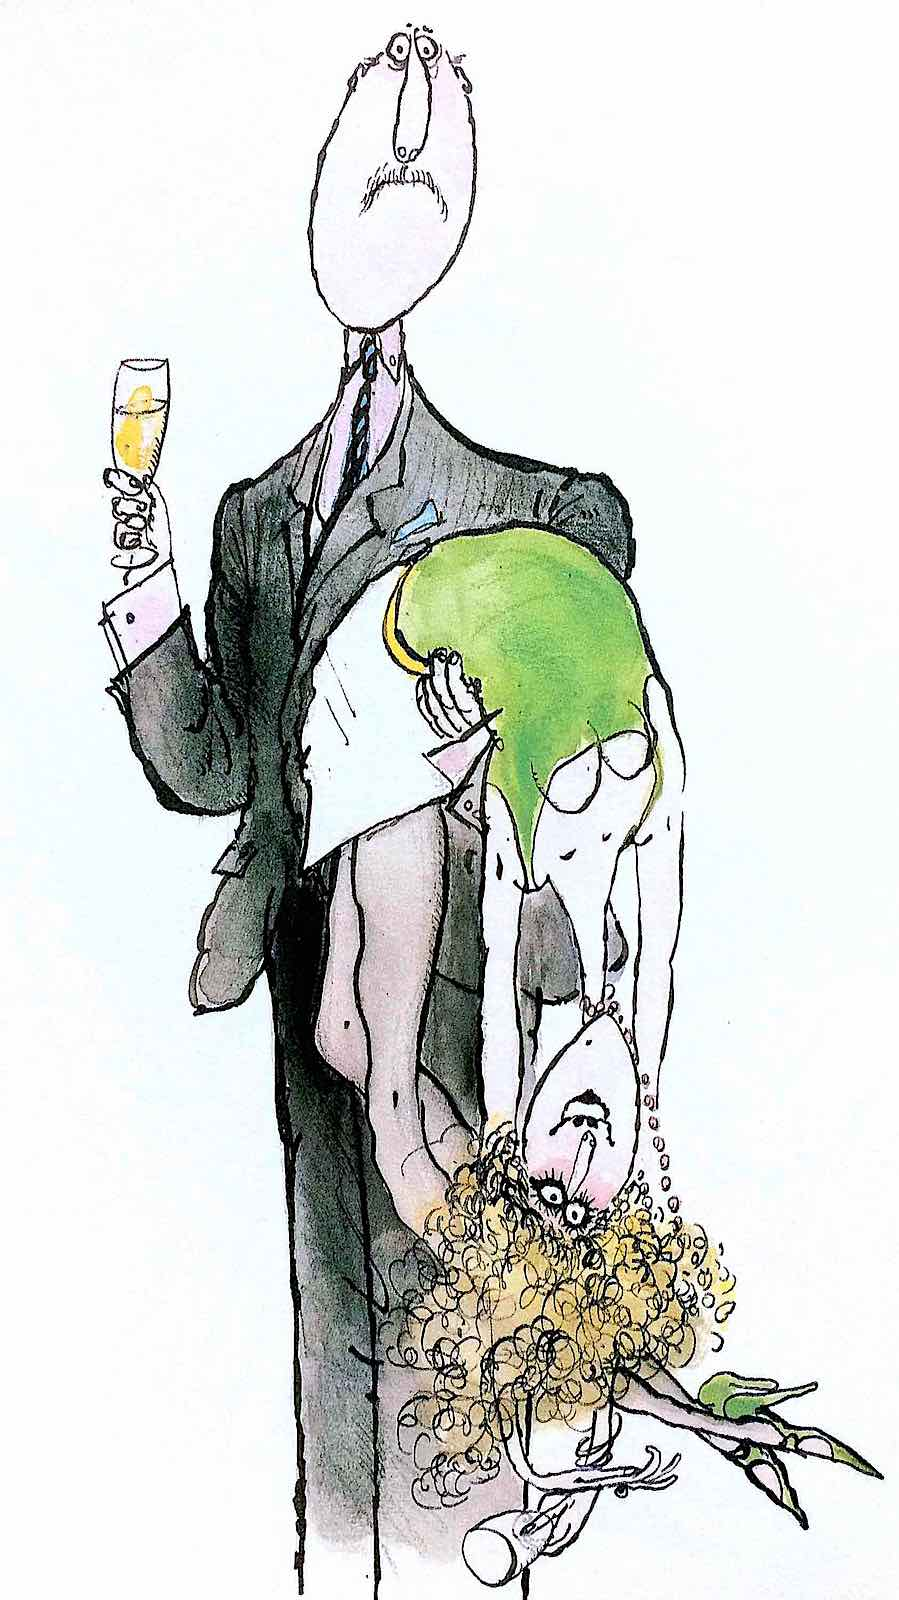 Ronald Searle, a sober man carrying his drunk woman